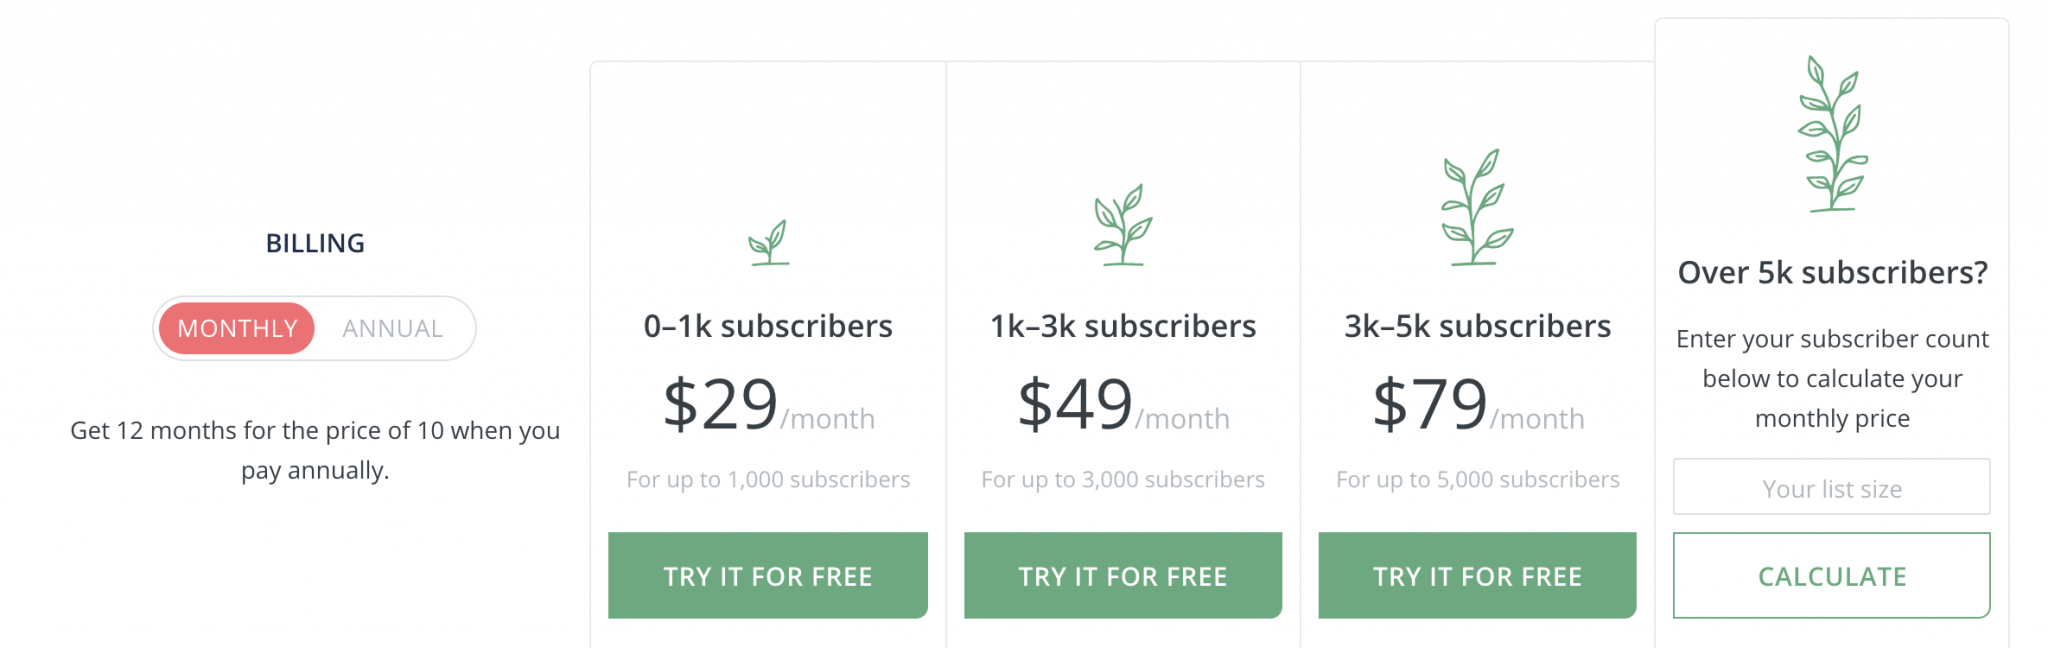 Coupon Code All In One Convertkit Email Marketing May